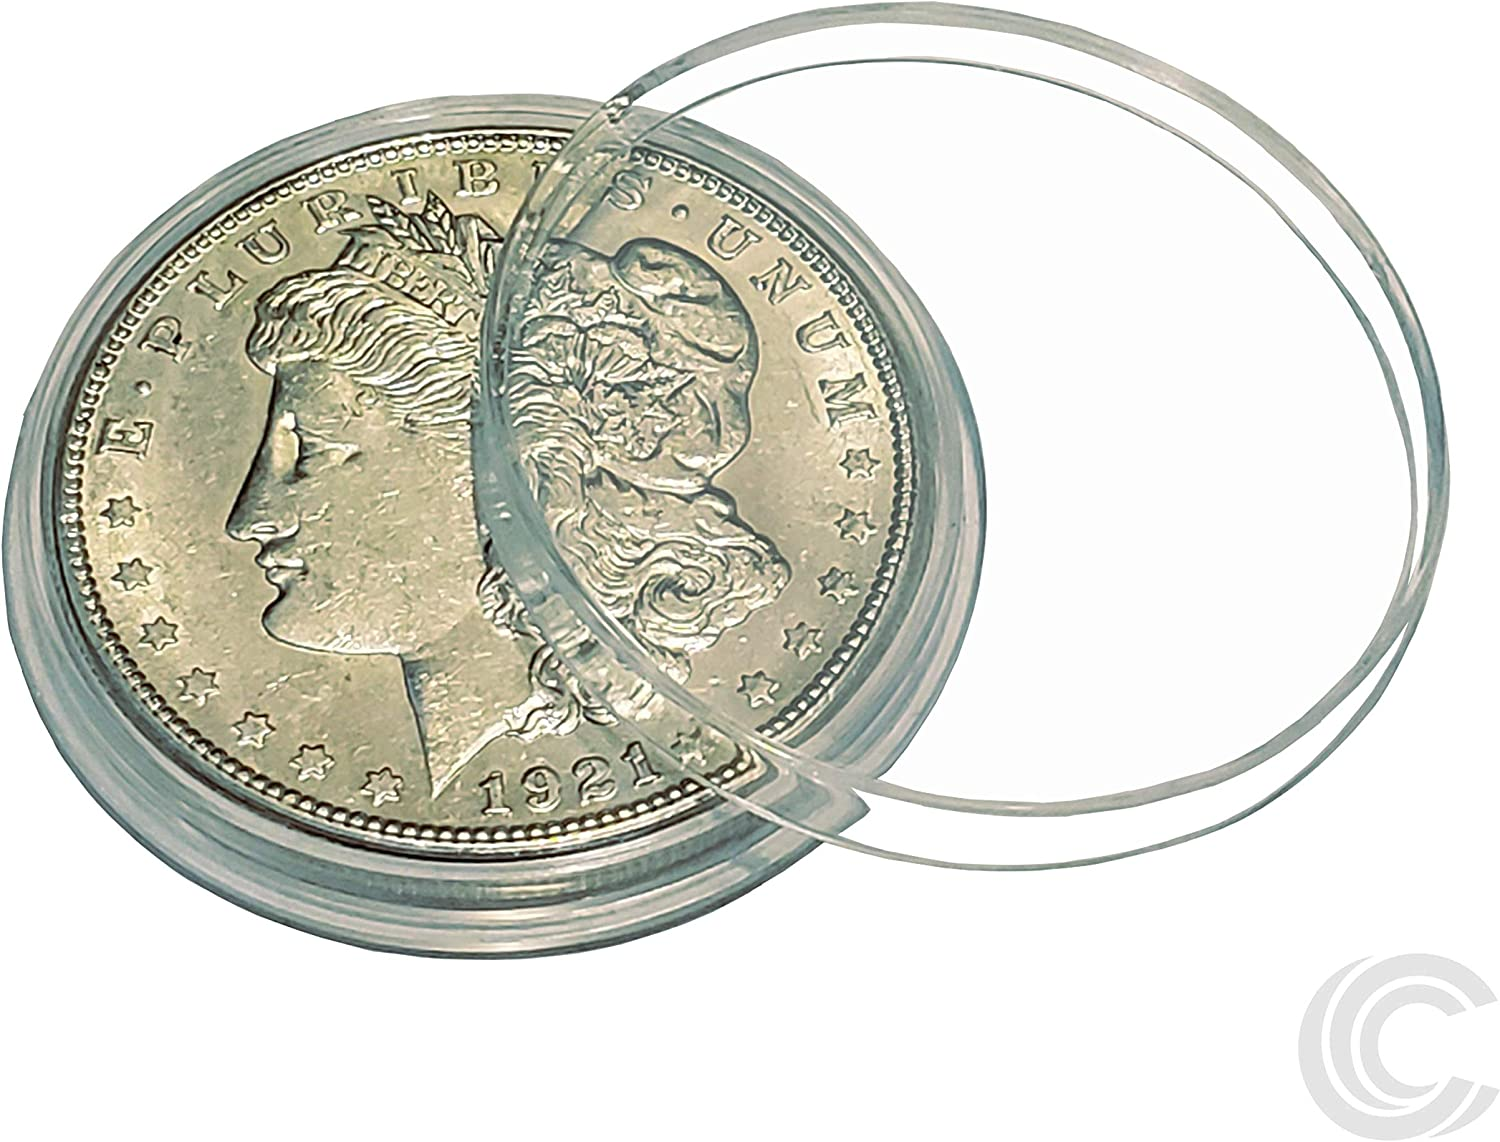 Ike 1 oz Silver Dollar 38mm Peace 50 Airtite Holders Coin Capsules for Morgan